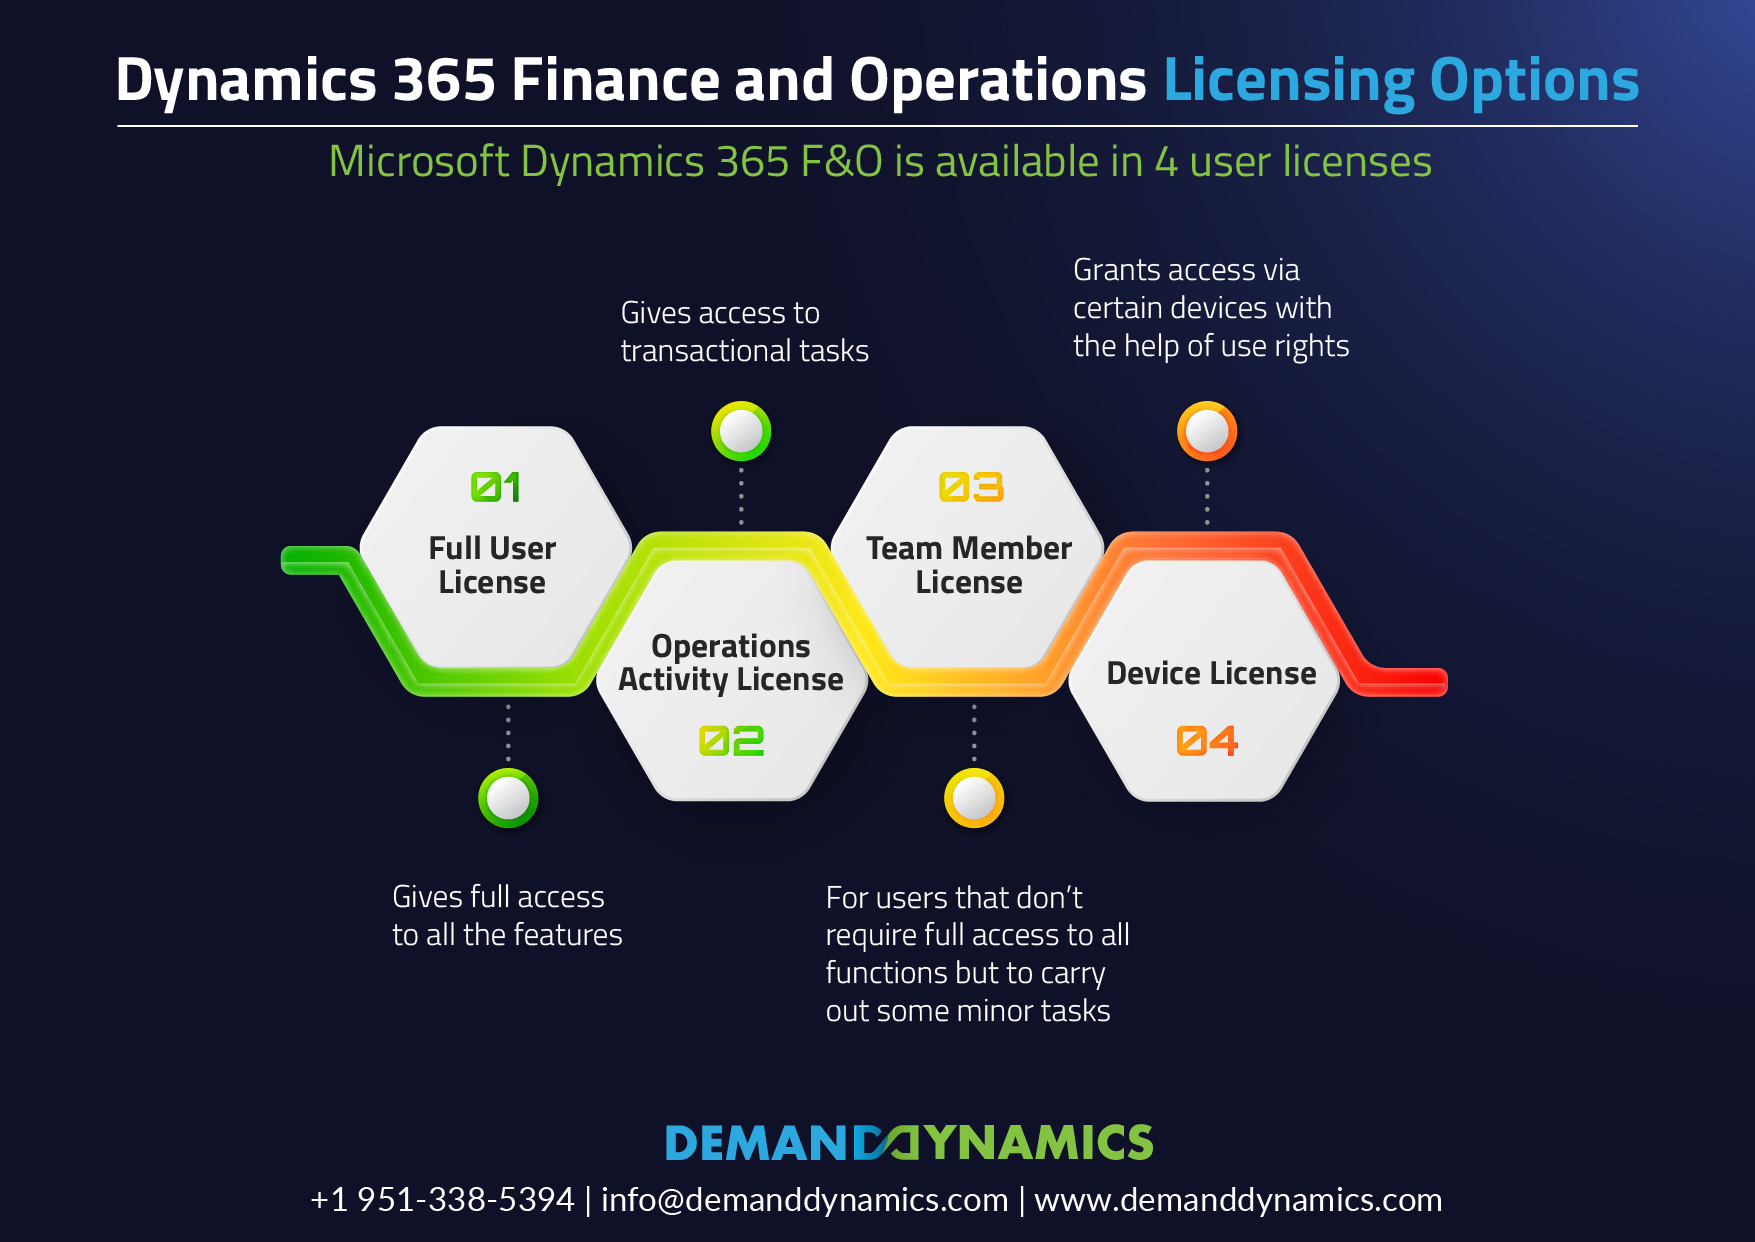 Dynamics 365 Finance and Operations Licensing Options